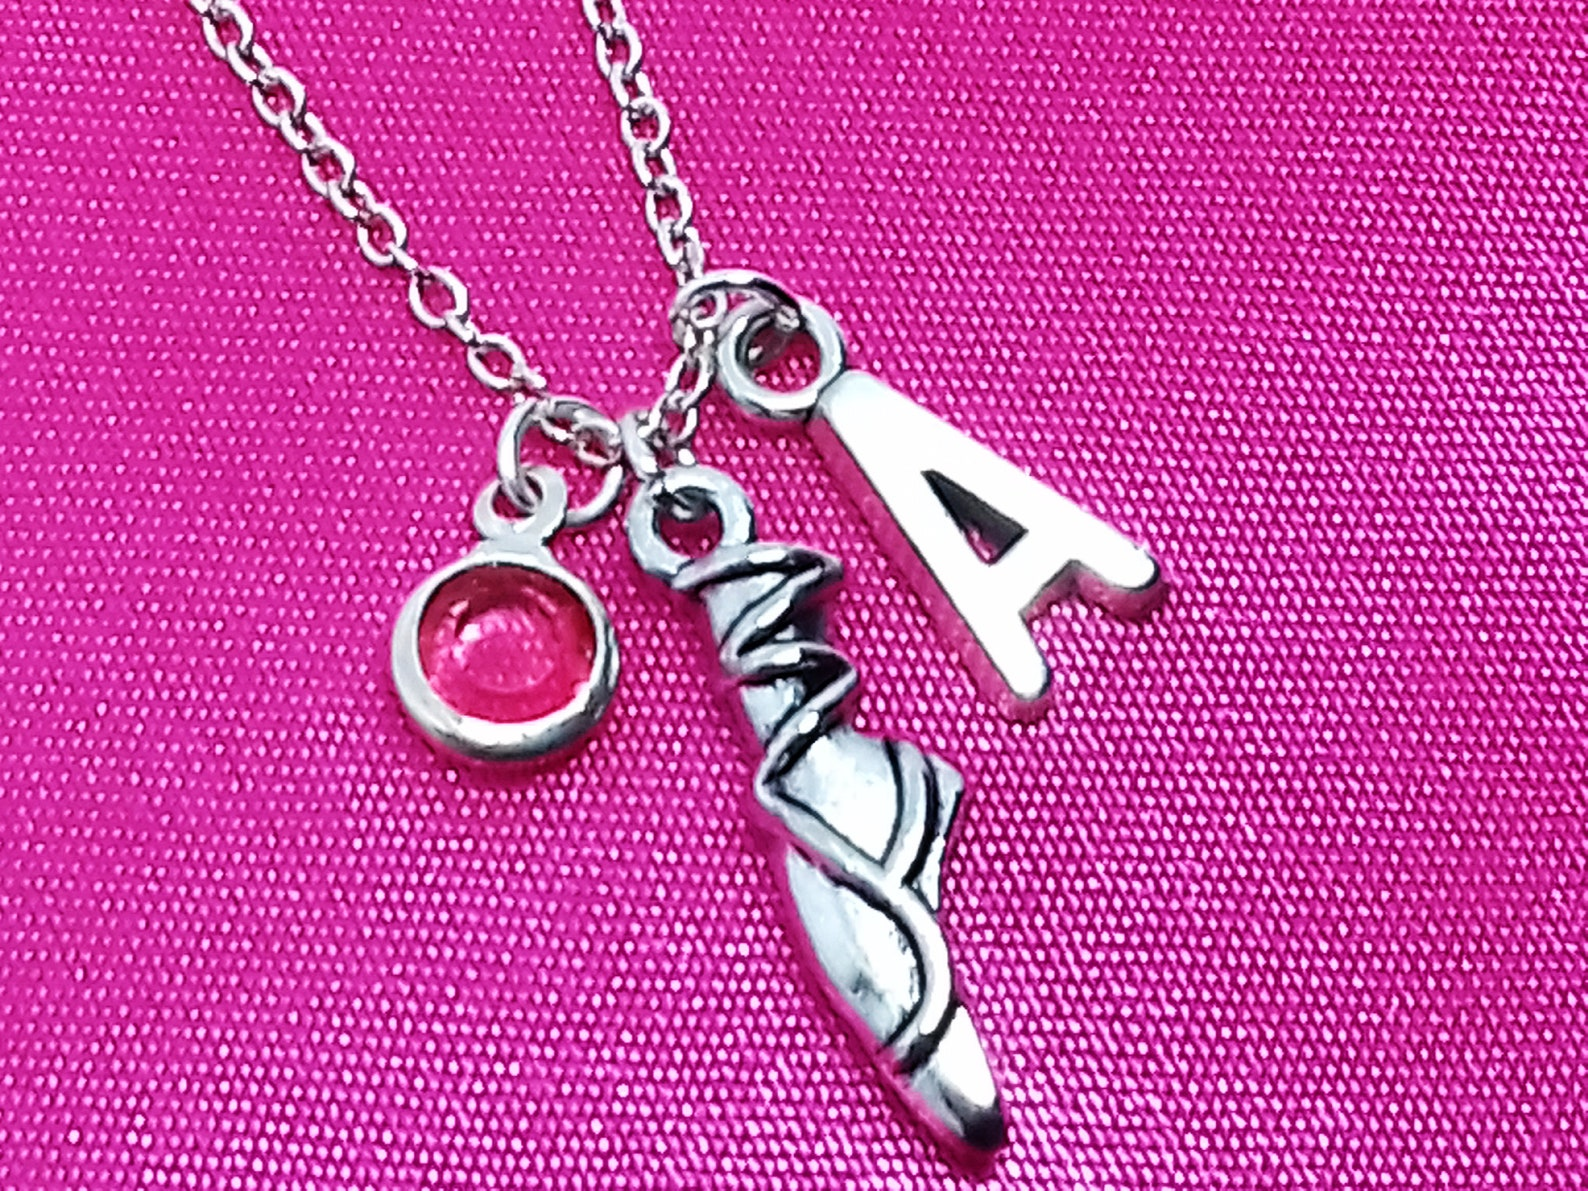 ballerina name necklace, ballet dance dancing dancer, birthstone initial letter monogram, personalized charm pendant jewelry kid